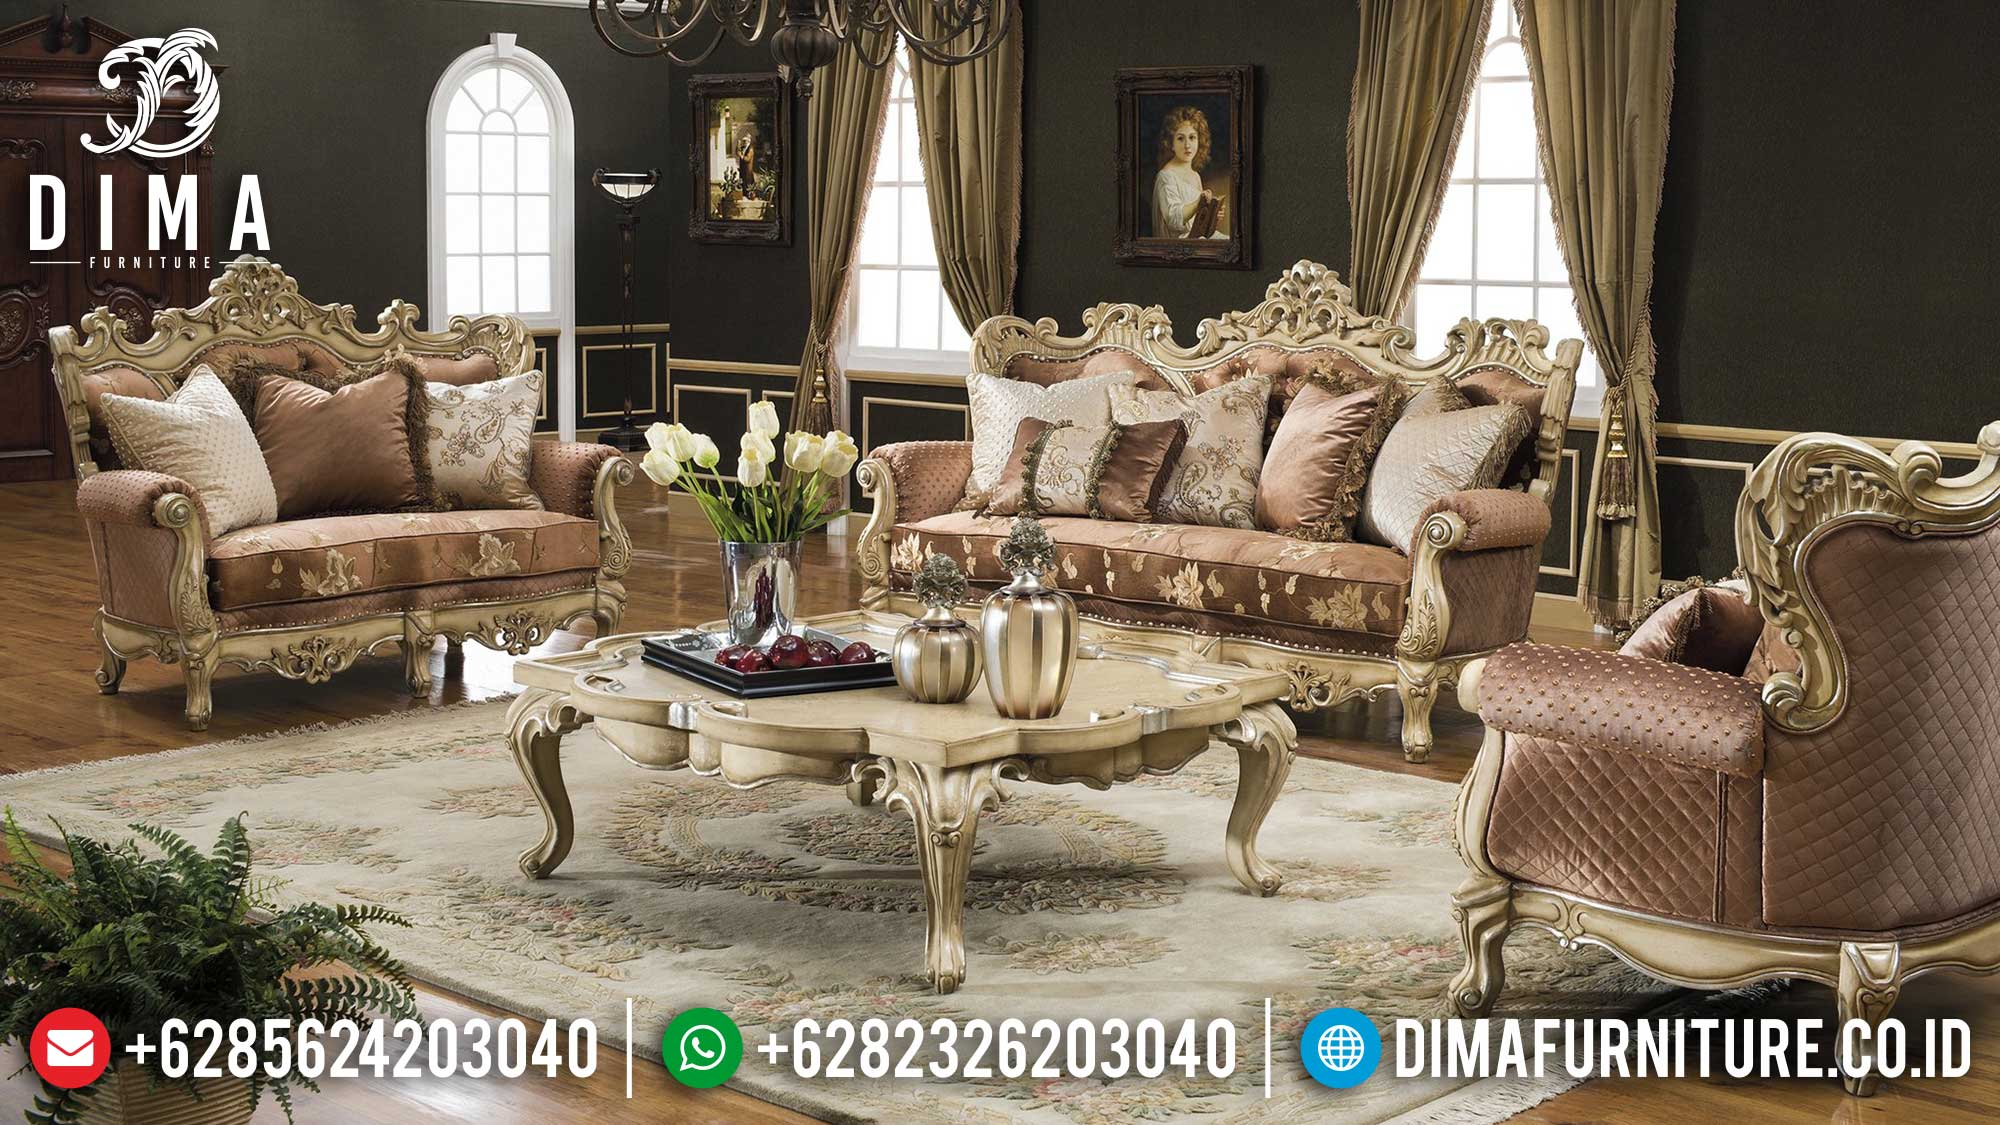 Set Sofa Tamu Ukiran Jepara Luxury Elegant Design Furniture Jepara Terbaru Mm-0980